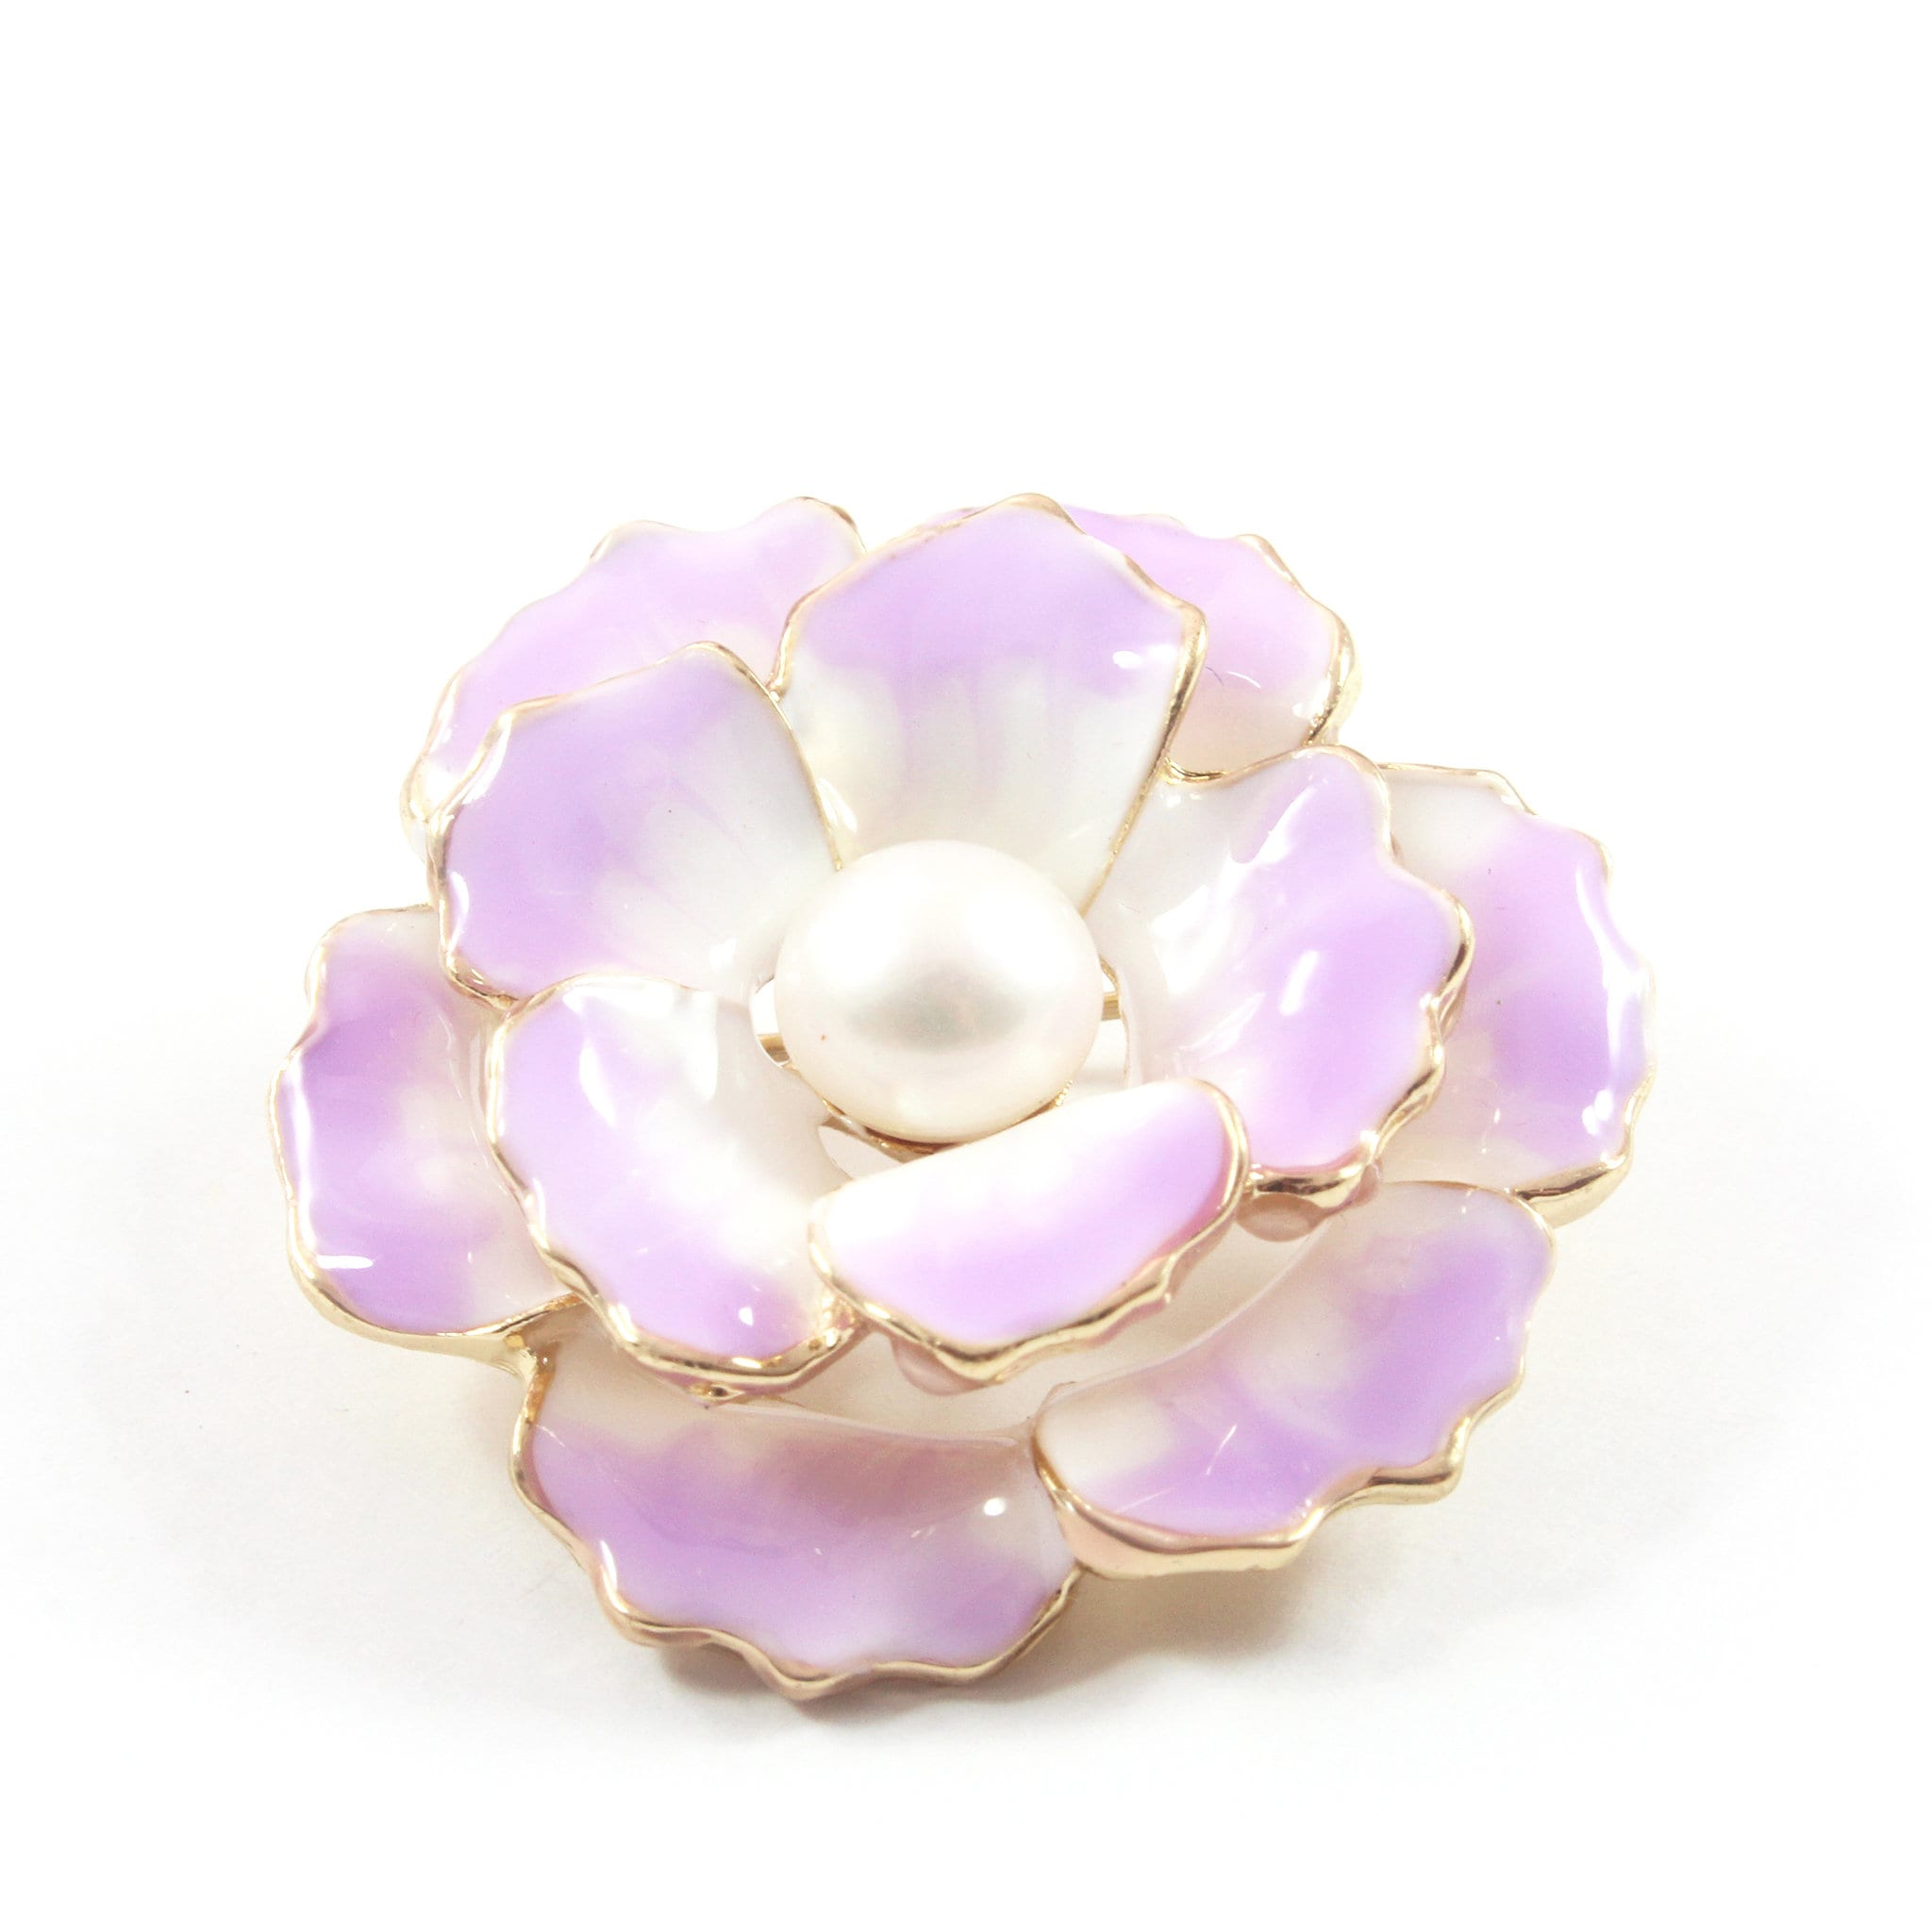 Peony Flower Freshwater Cultured Pearl Brooch 7.5-8.0mm